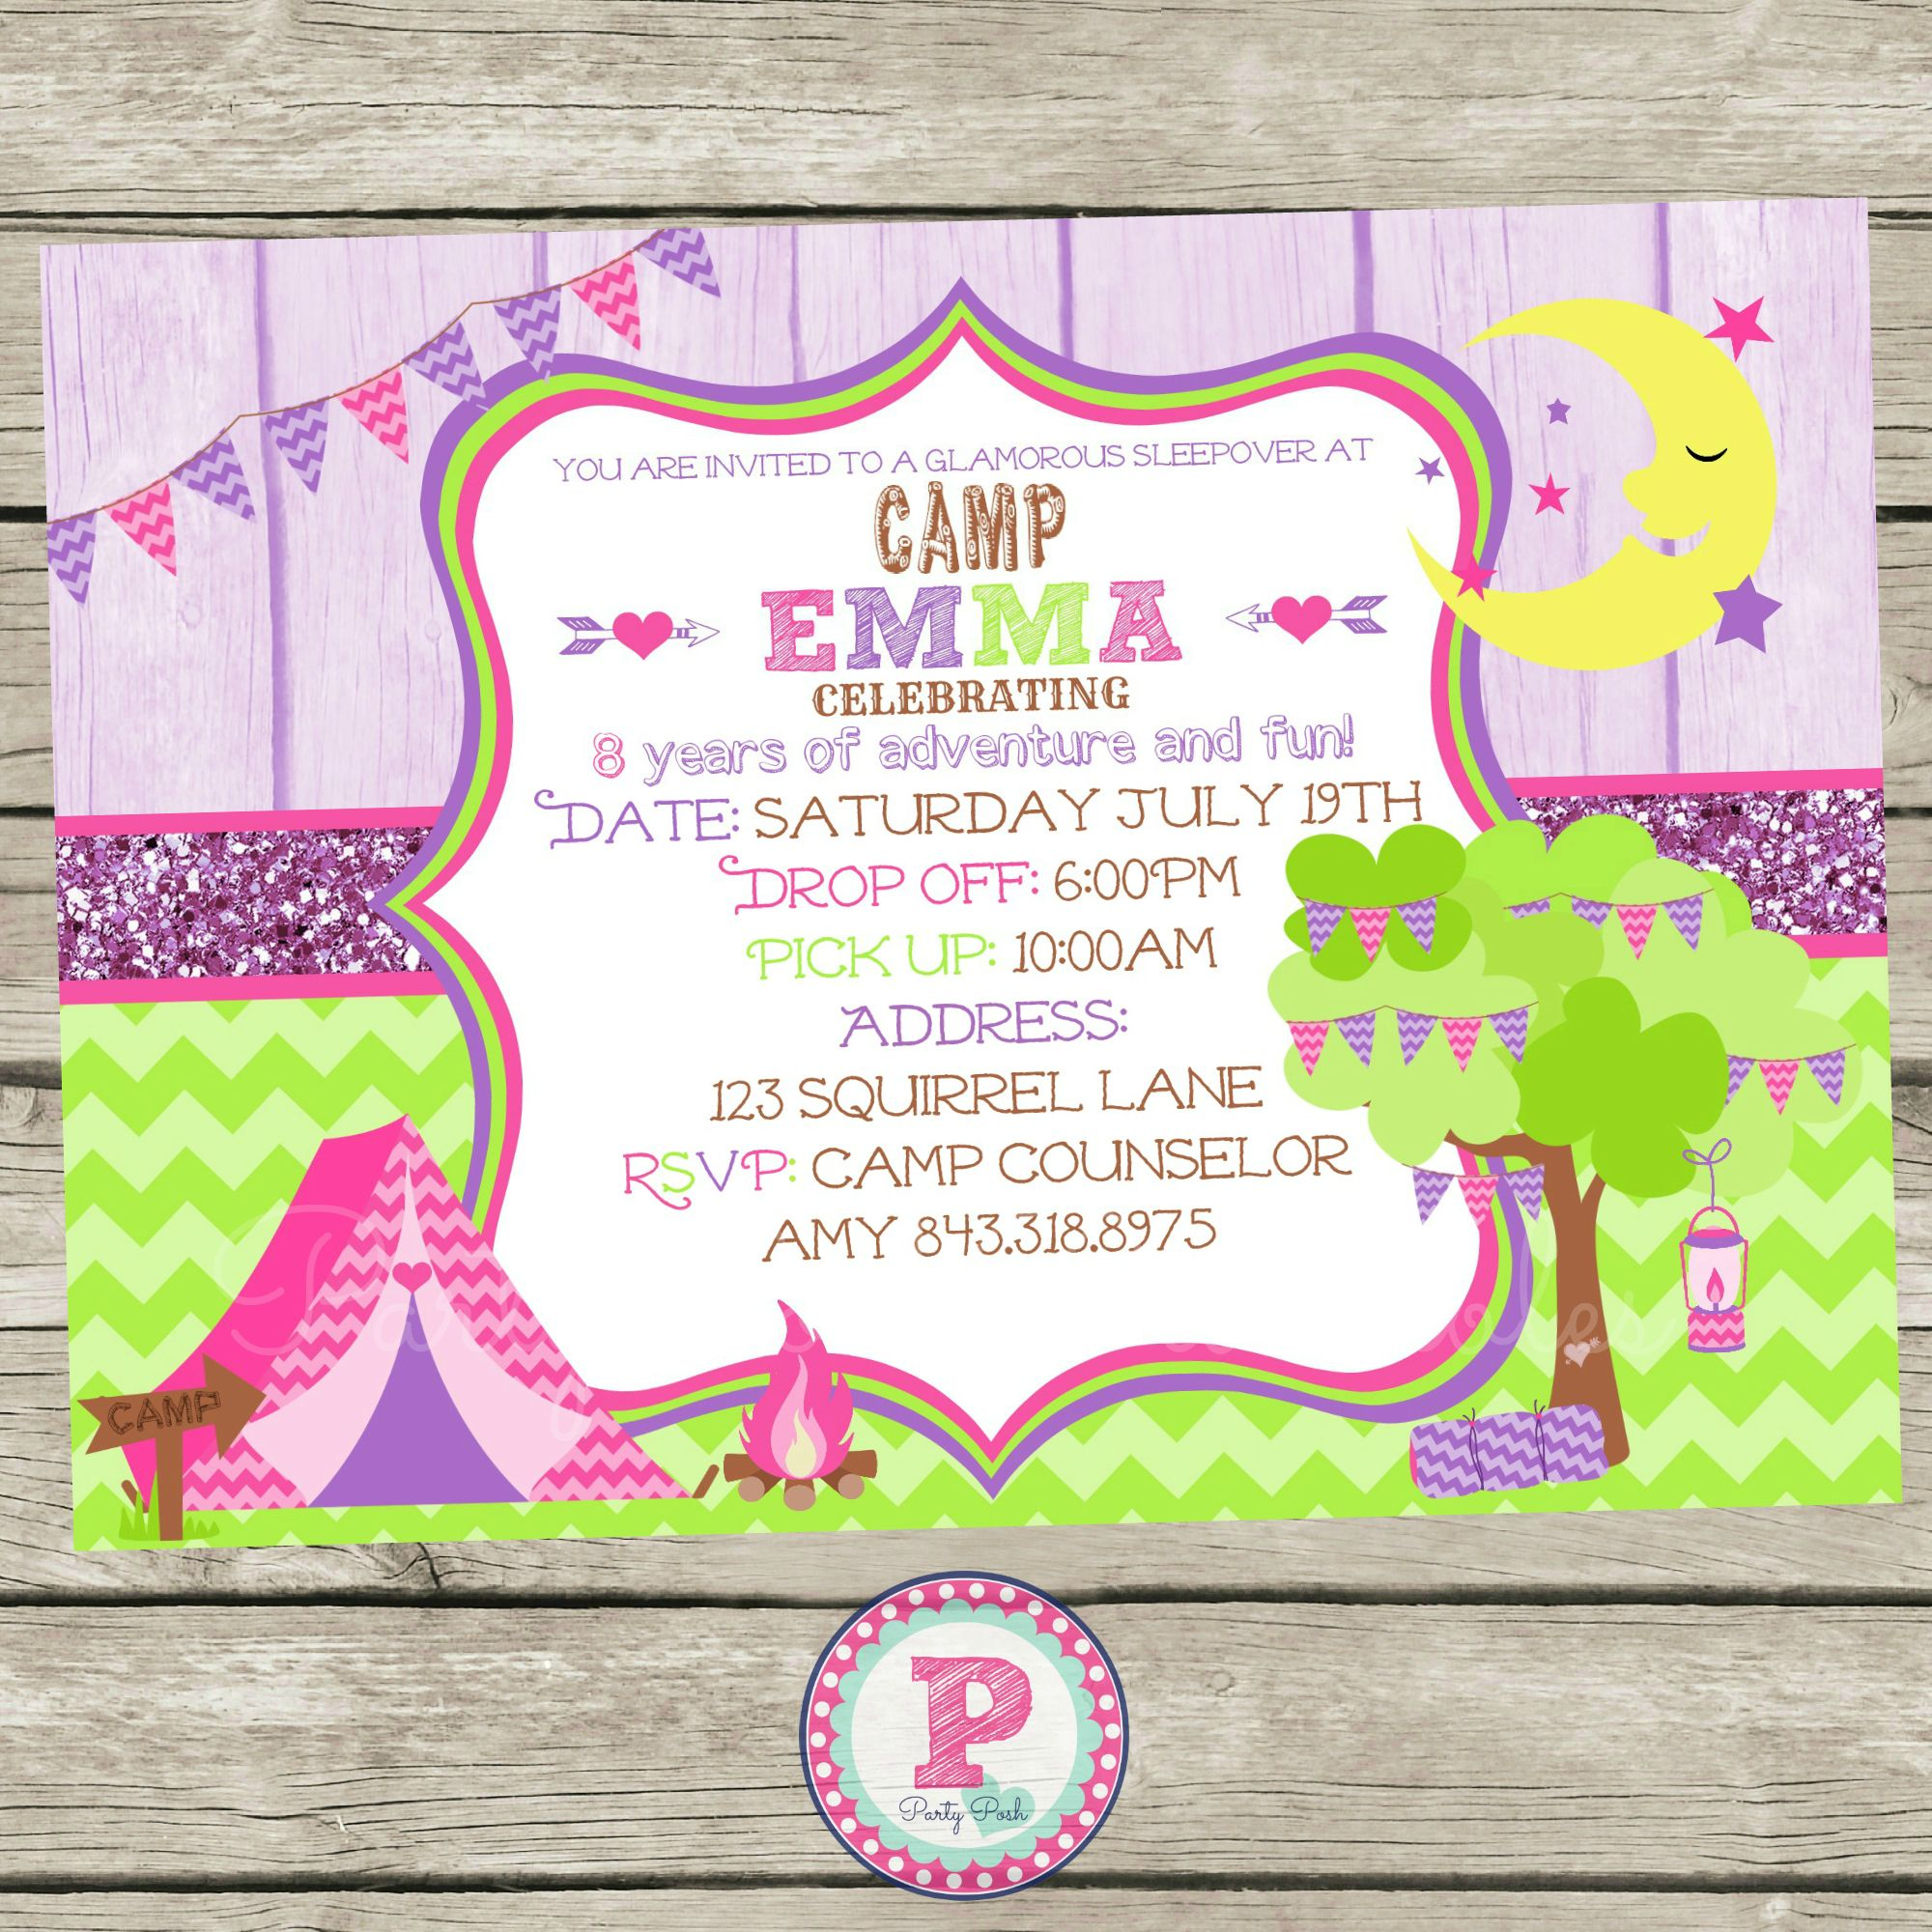 Glam Camping Camp Party Invitation for a Birthday Party Camp out or ...